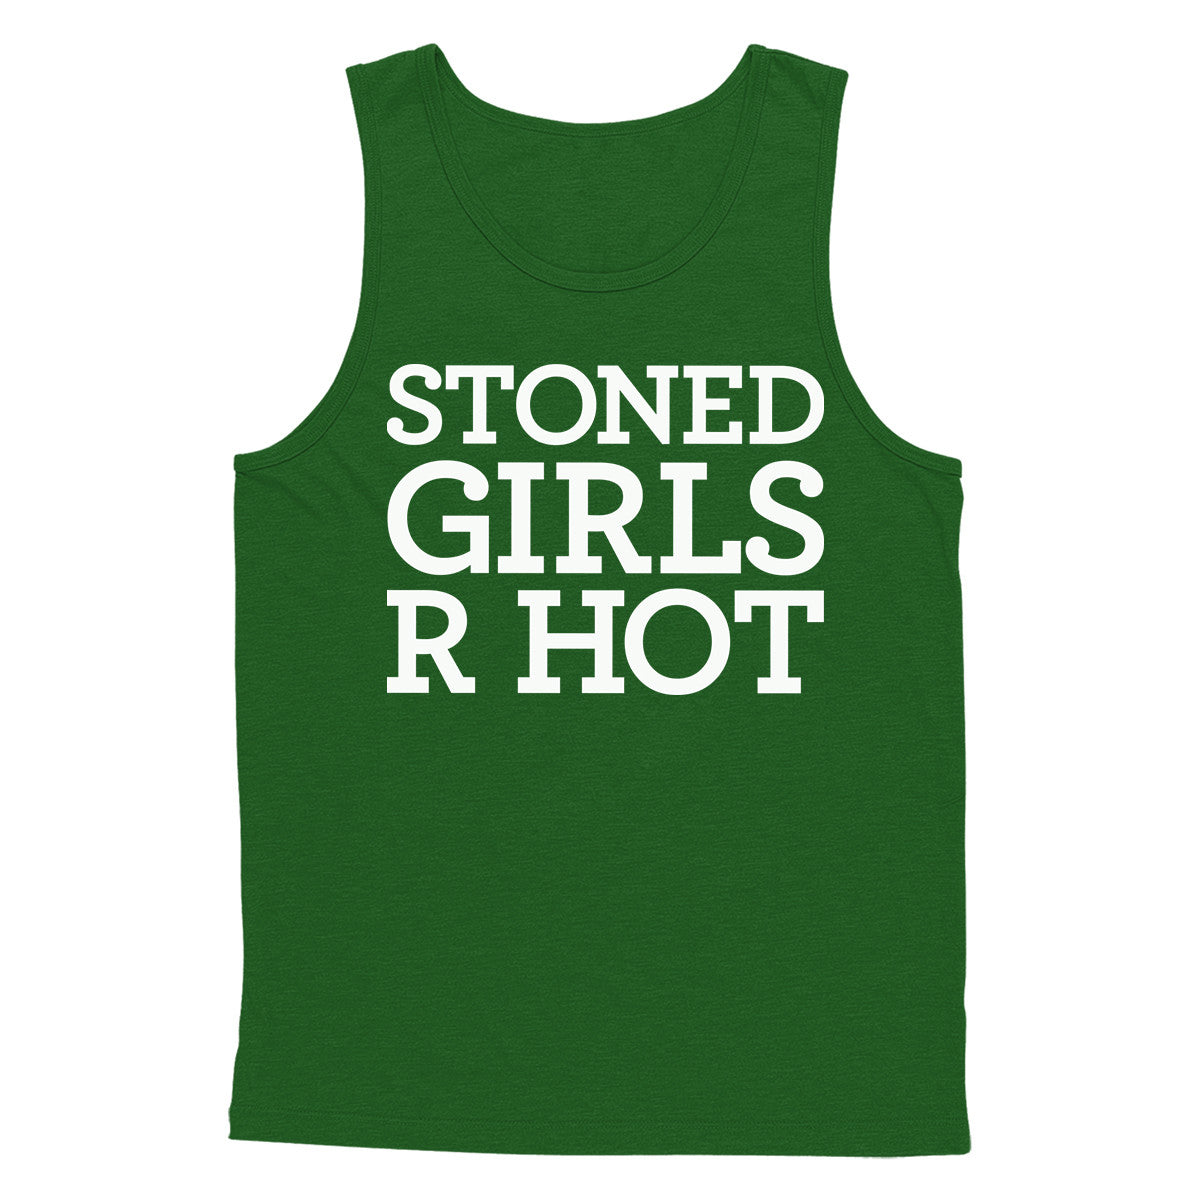 Stoned Girls R Hot Tank Top